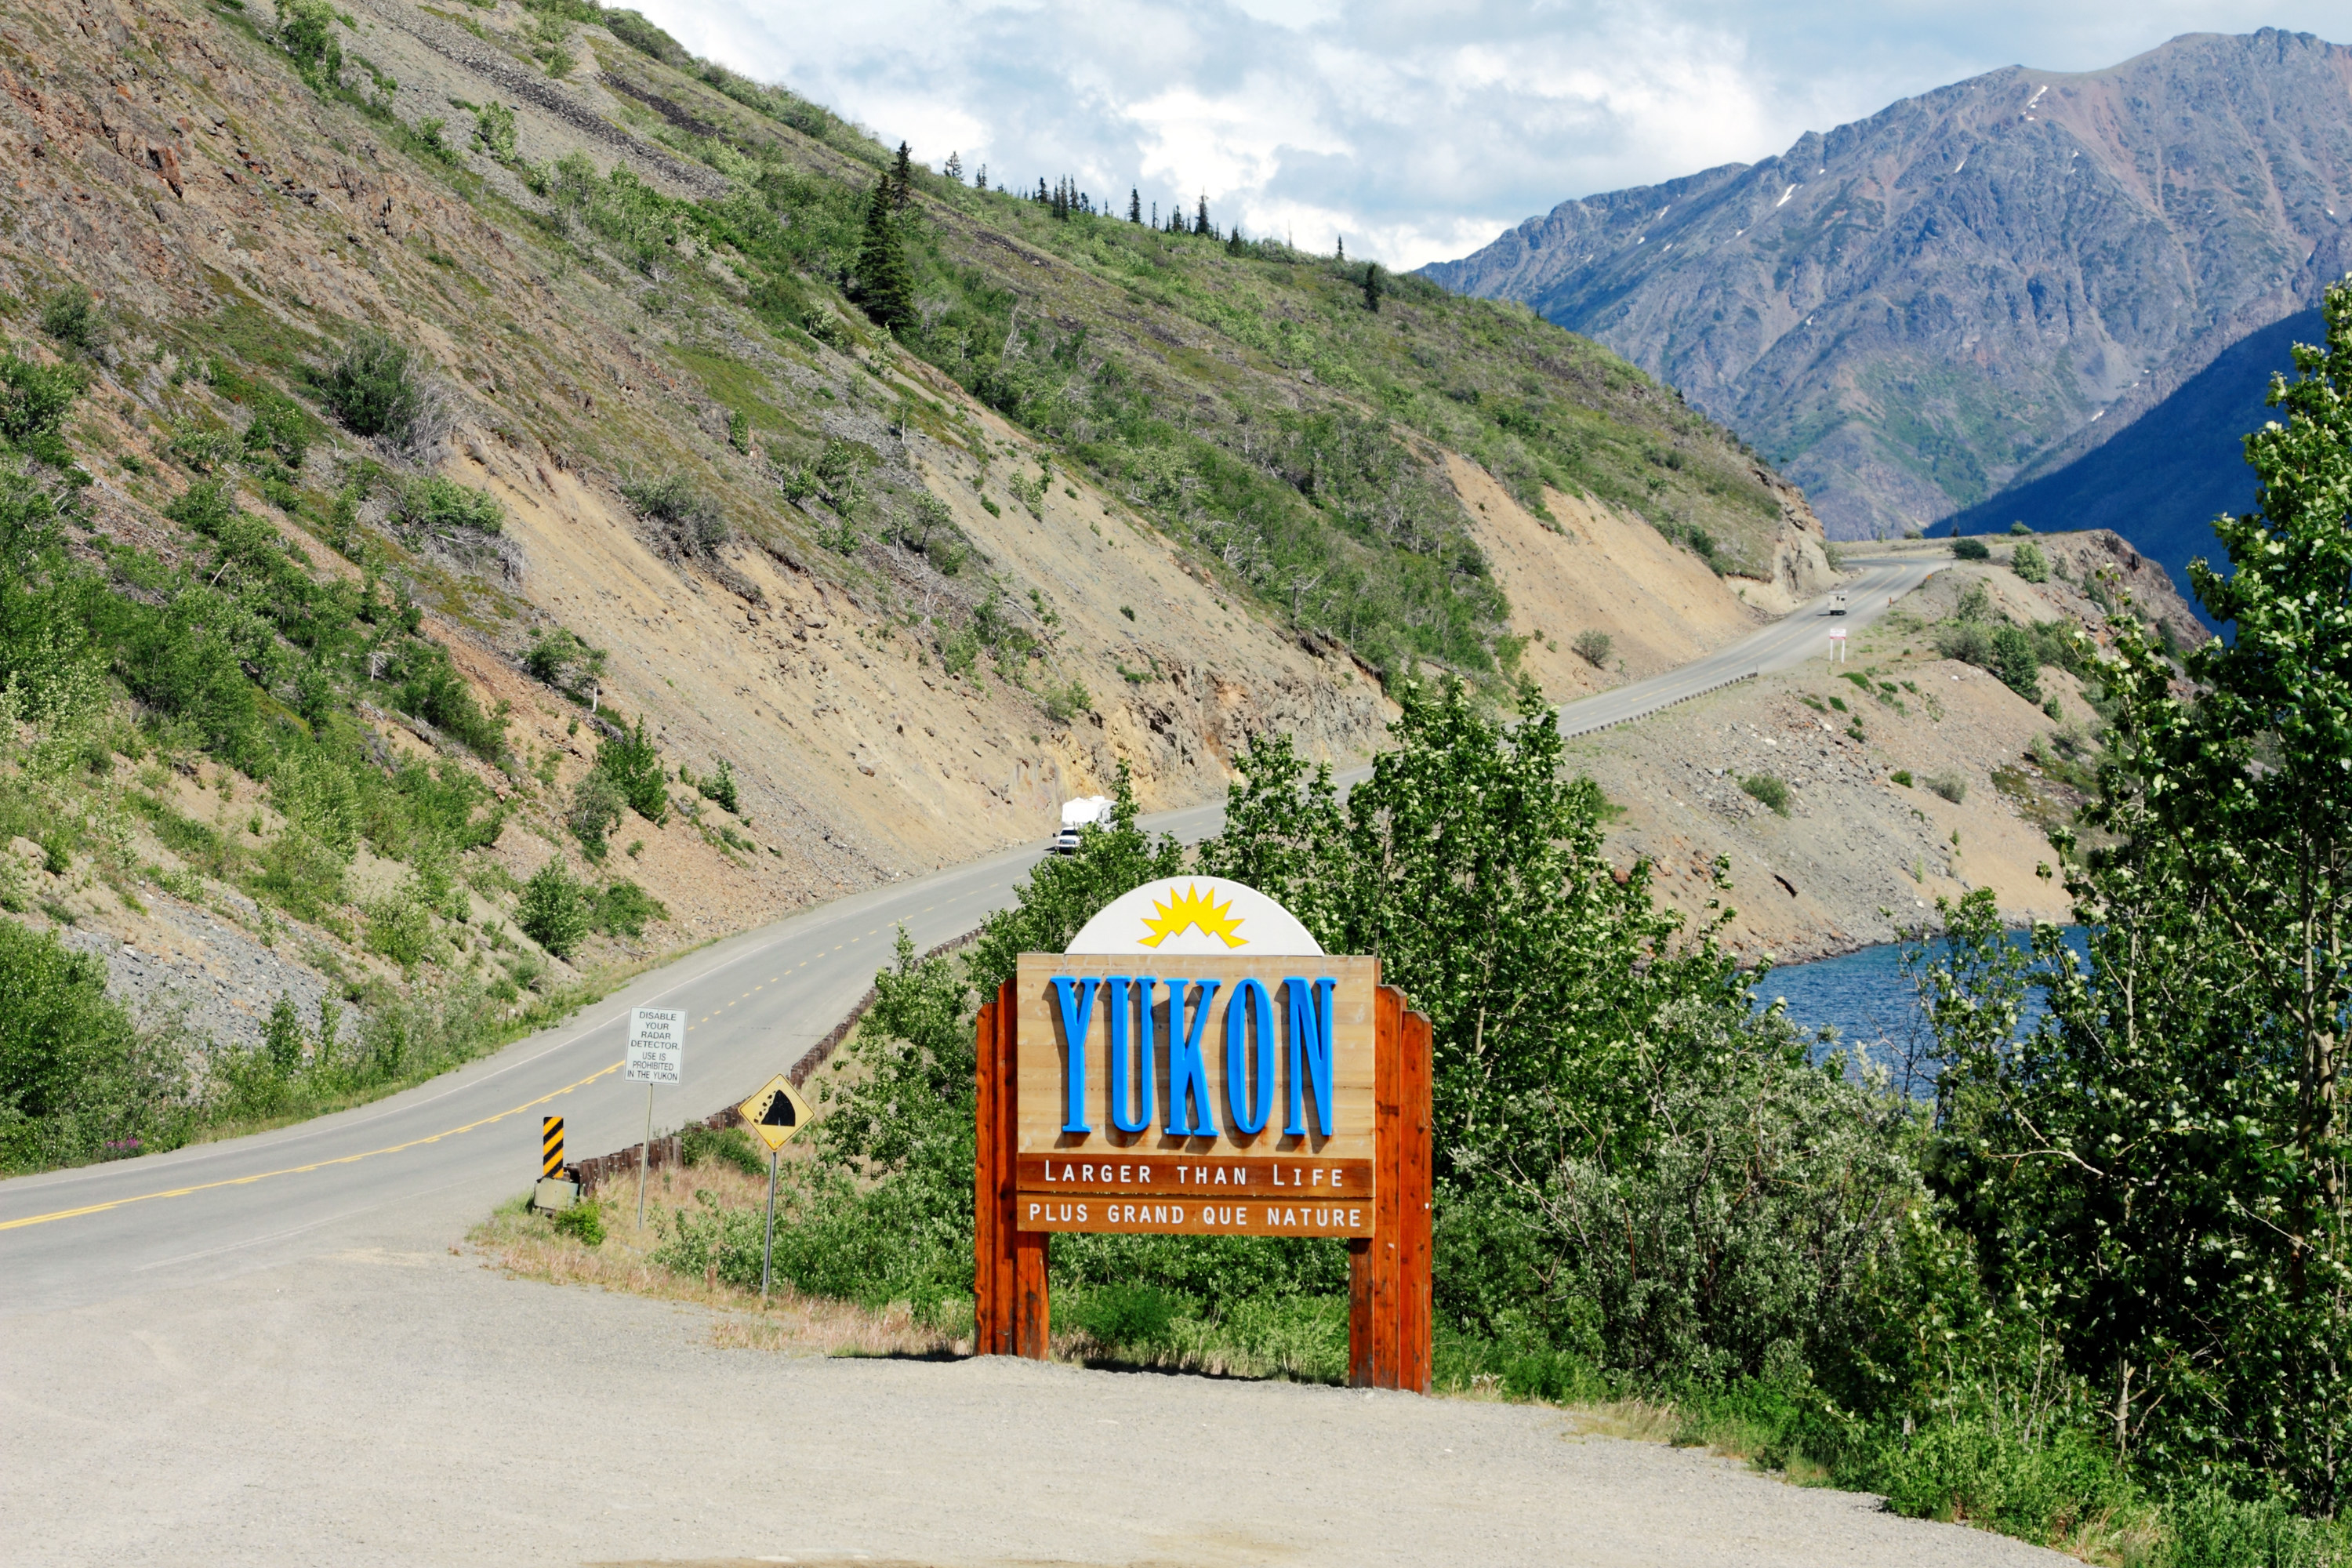 Welcome to Yukon sign on South Klondike Highway at the border of Yukon and British Columbia in Canada